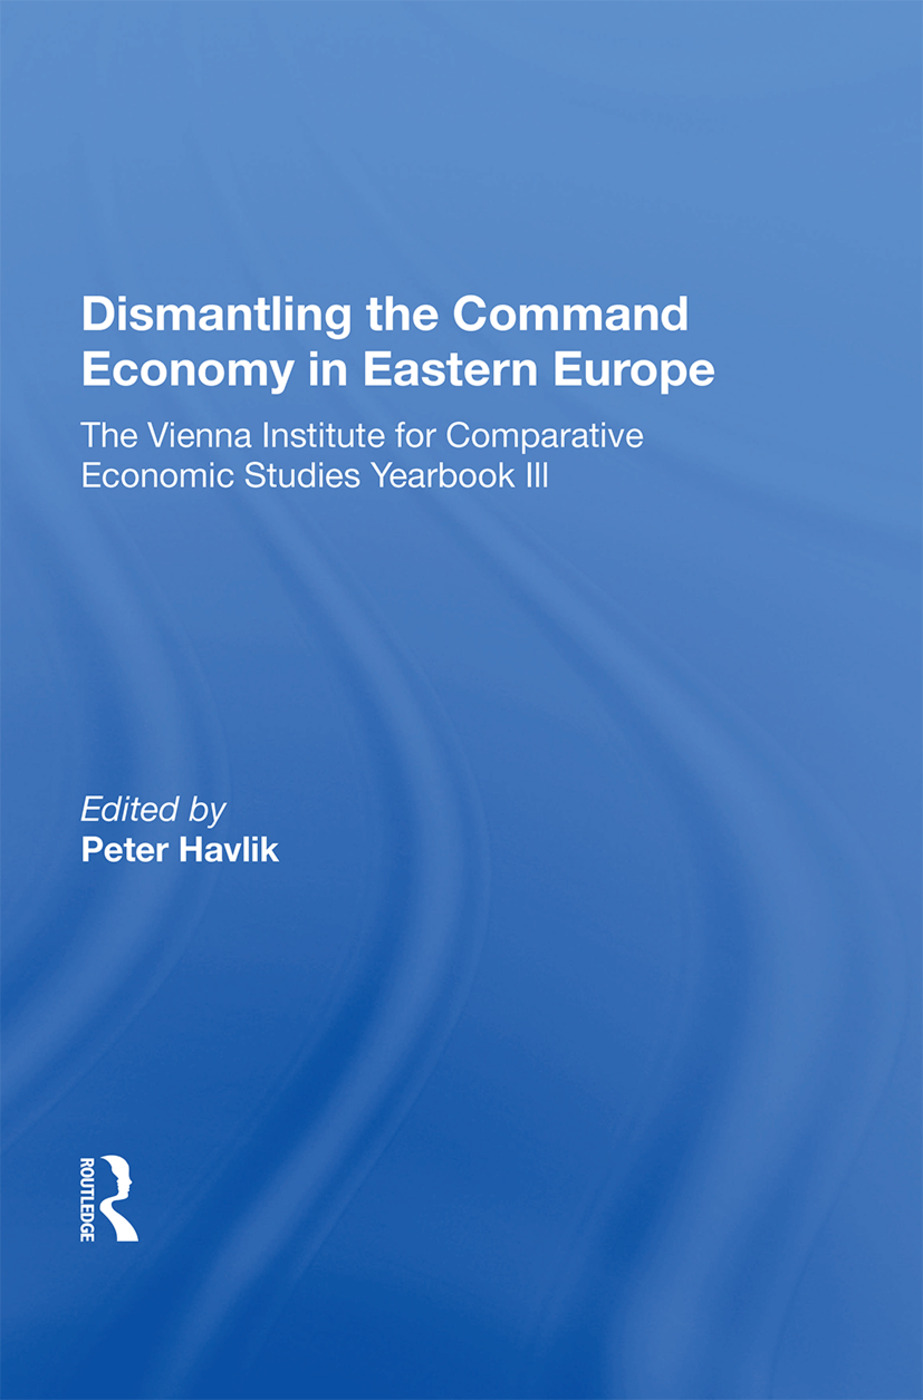 Dismantling The Command Economy In Eastern Europe: The Vienna Institute For Comparative Economic Studies Yearbook Iii, 1st Edition (Hardback) book cover